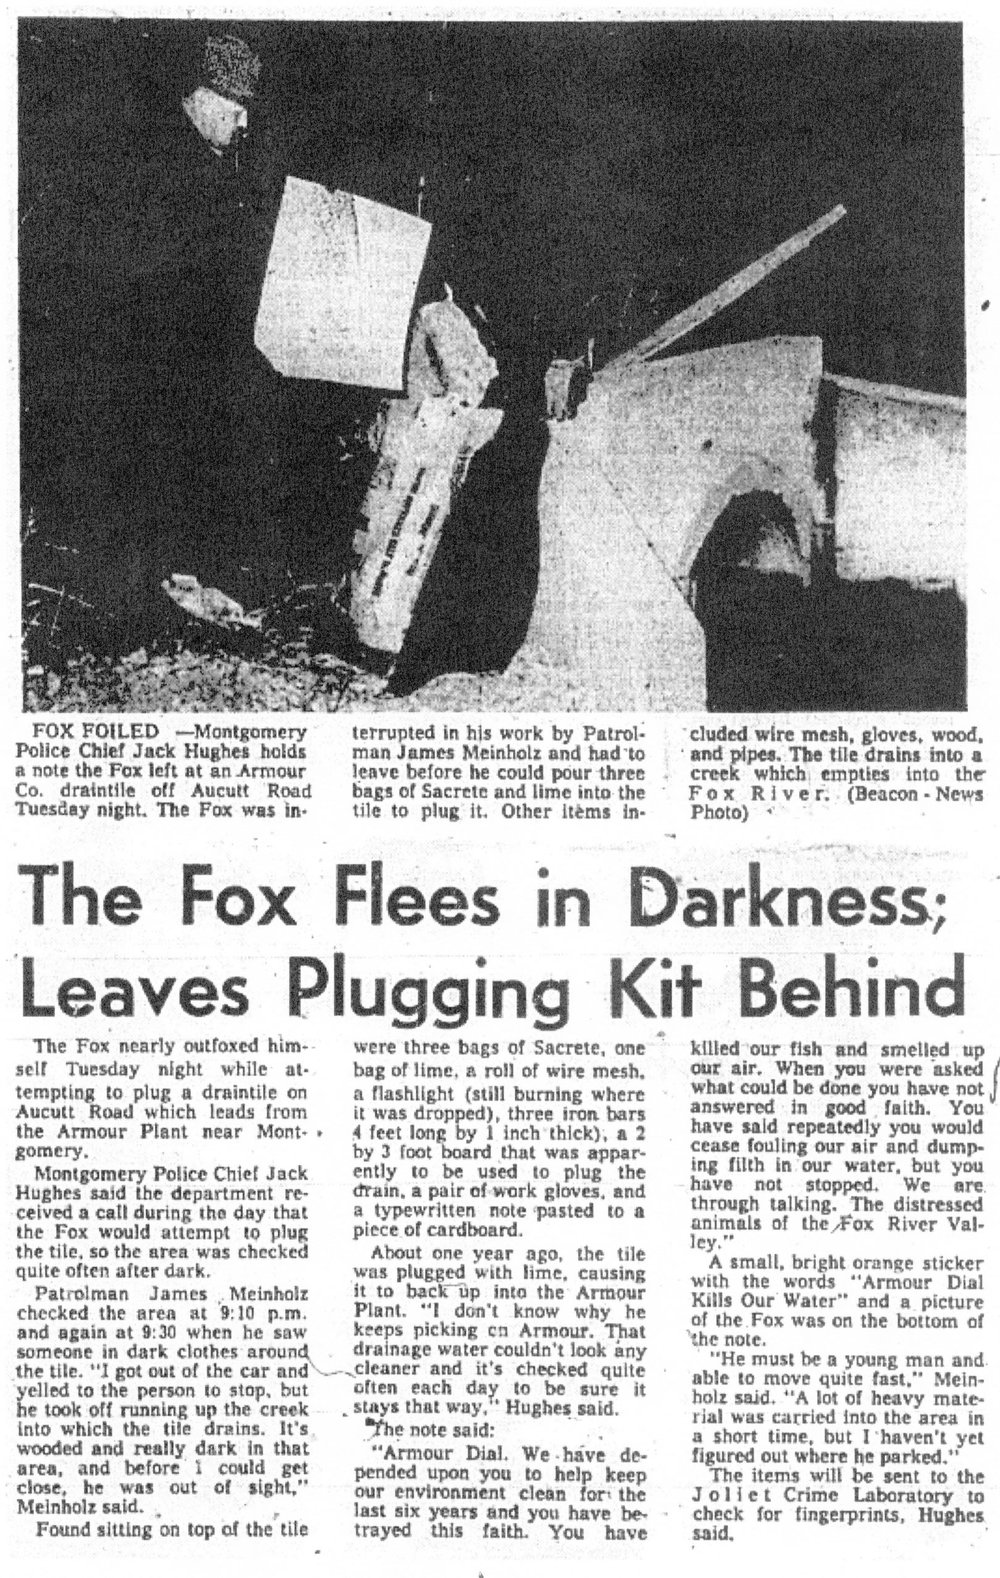 Article detailing a second attempt by the Fox at clogging the pipe. | The Aurora Beacon News | march 24th, 1971 | Page 1